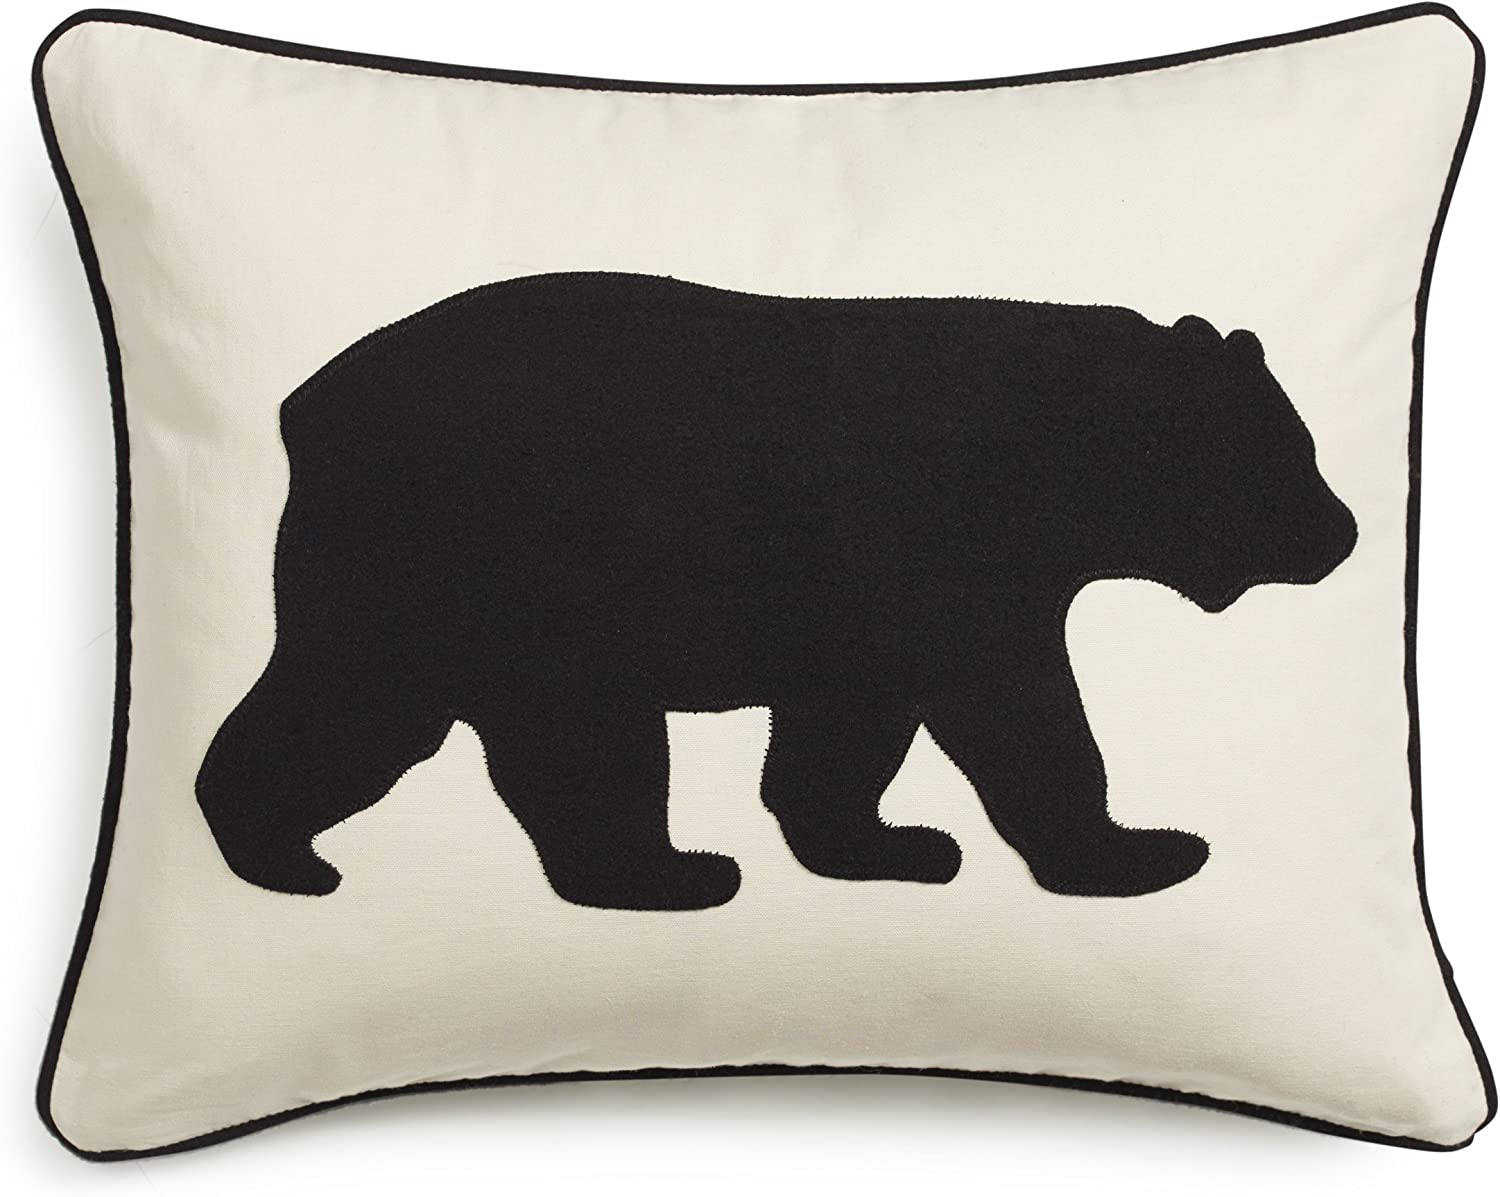 Eddie Bauer Bear Twill Decorative Pillow, Black